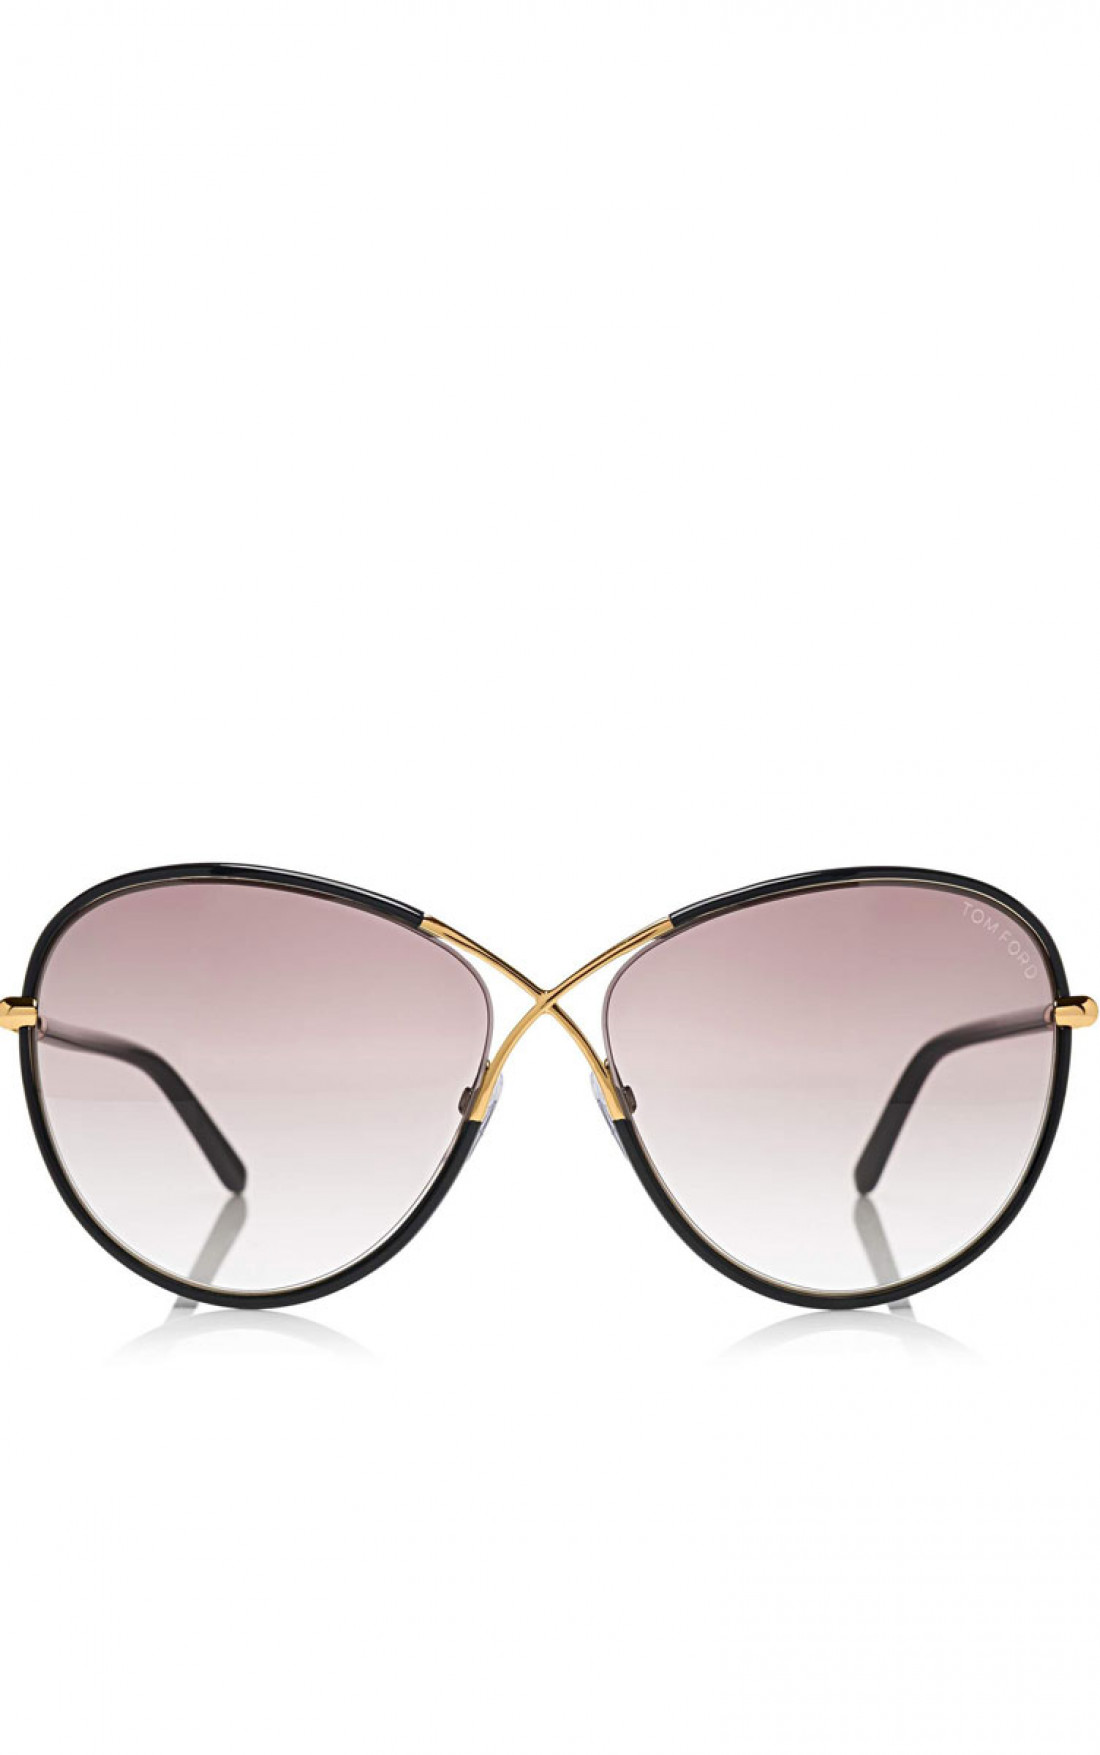 TOM FORD 'Rosie' Oversized Butterfly Sunglasses Black Front (FT0344)